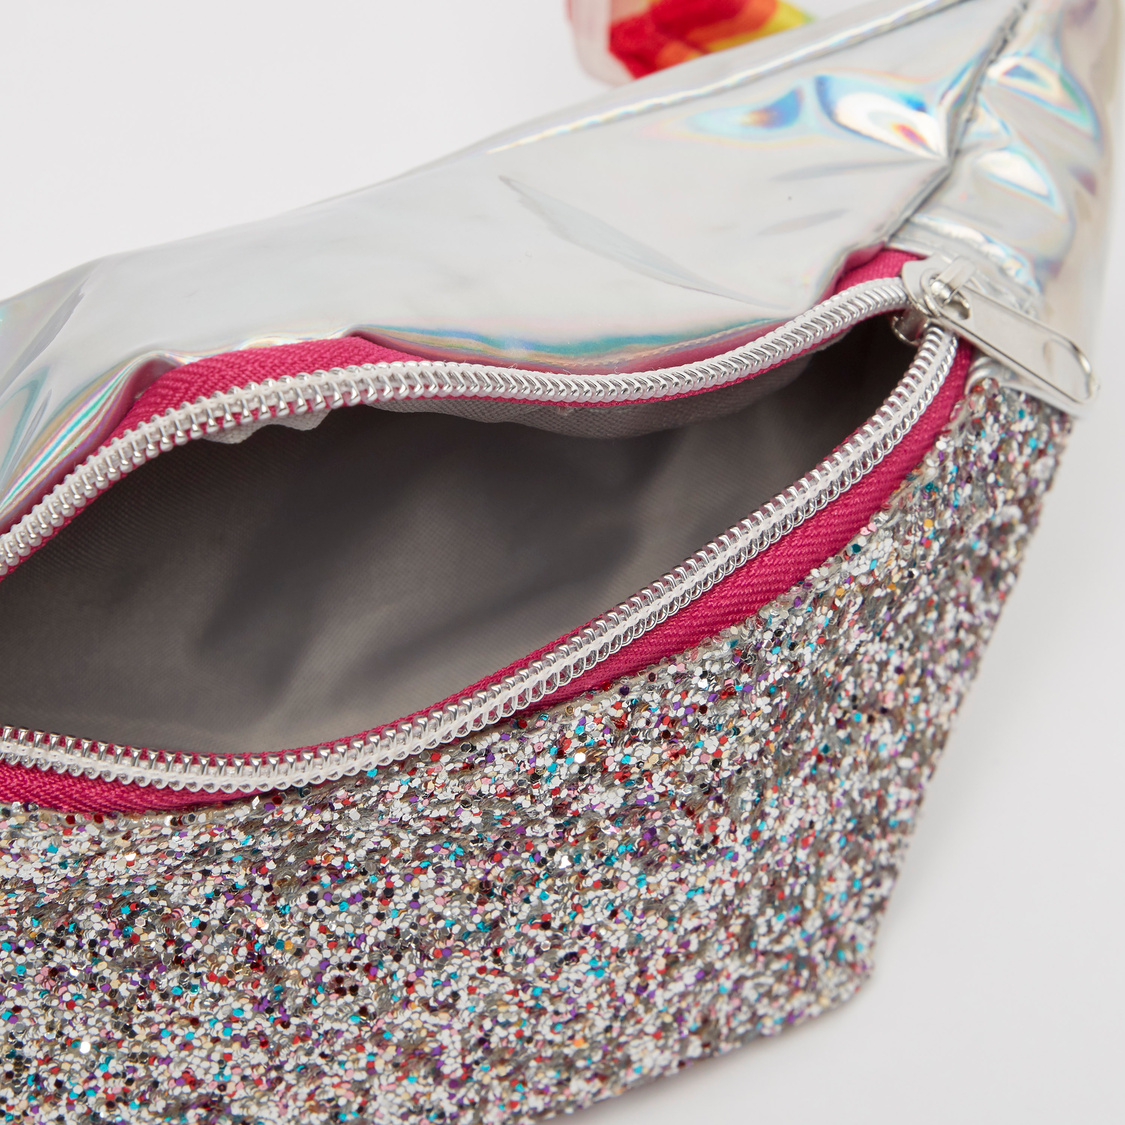 Embellished Fanny Pack with Adjustable Strap and Zip Closure